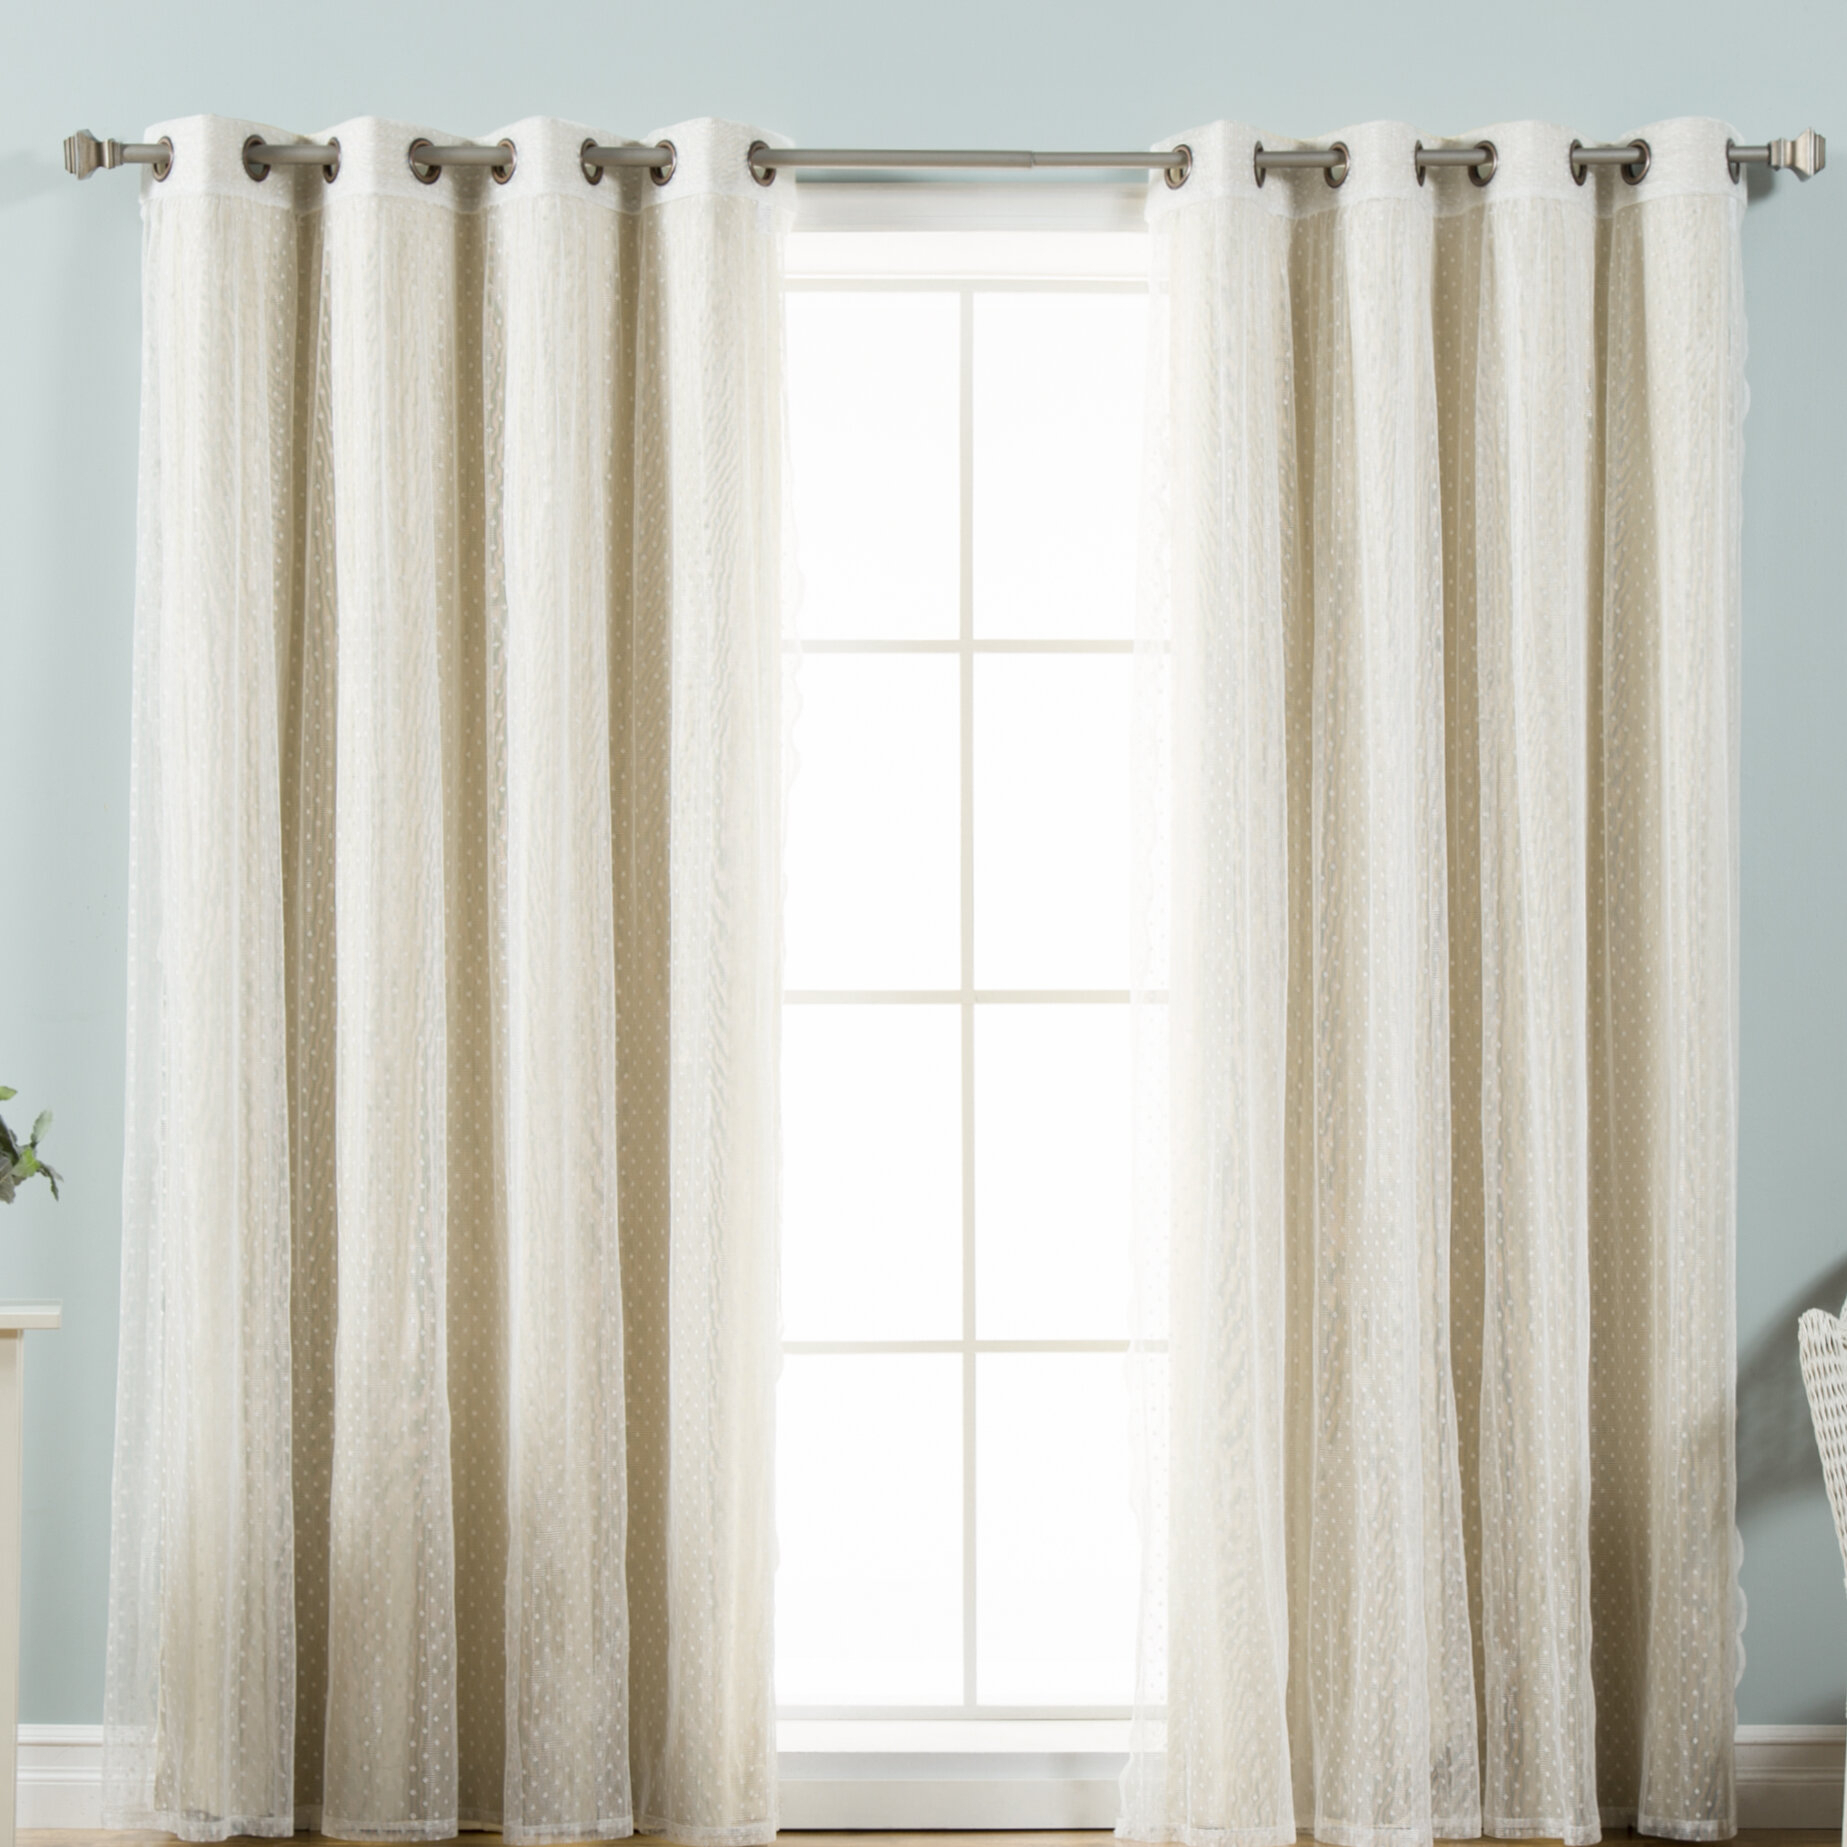 Tulle Lace Polka Dots Blackout Thermal Grommet Curtain Panels In Mix And Match Blackout Tulle Lace Sheer Curtain Panel Sets (View 13 of 20)